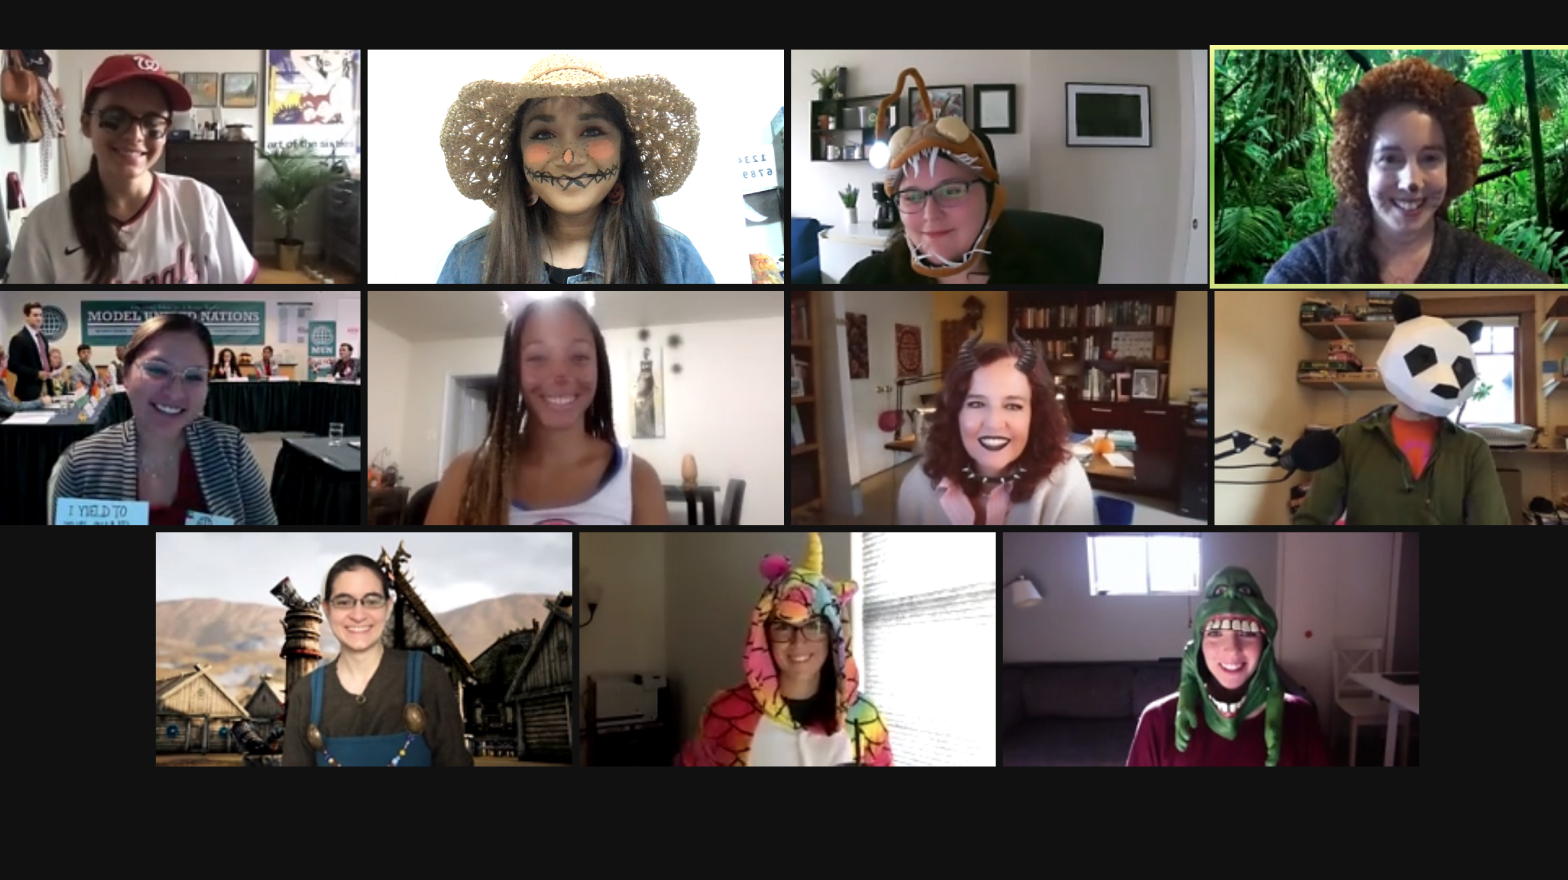 Axions demonstrating their Halloween spirit by wearing costumes on a Zoom call